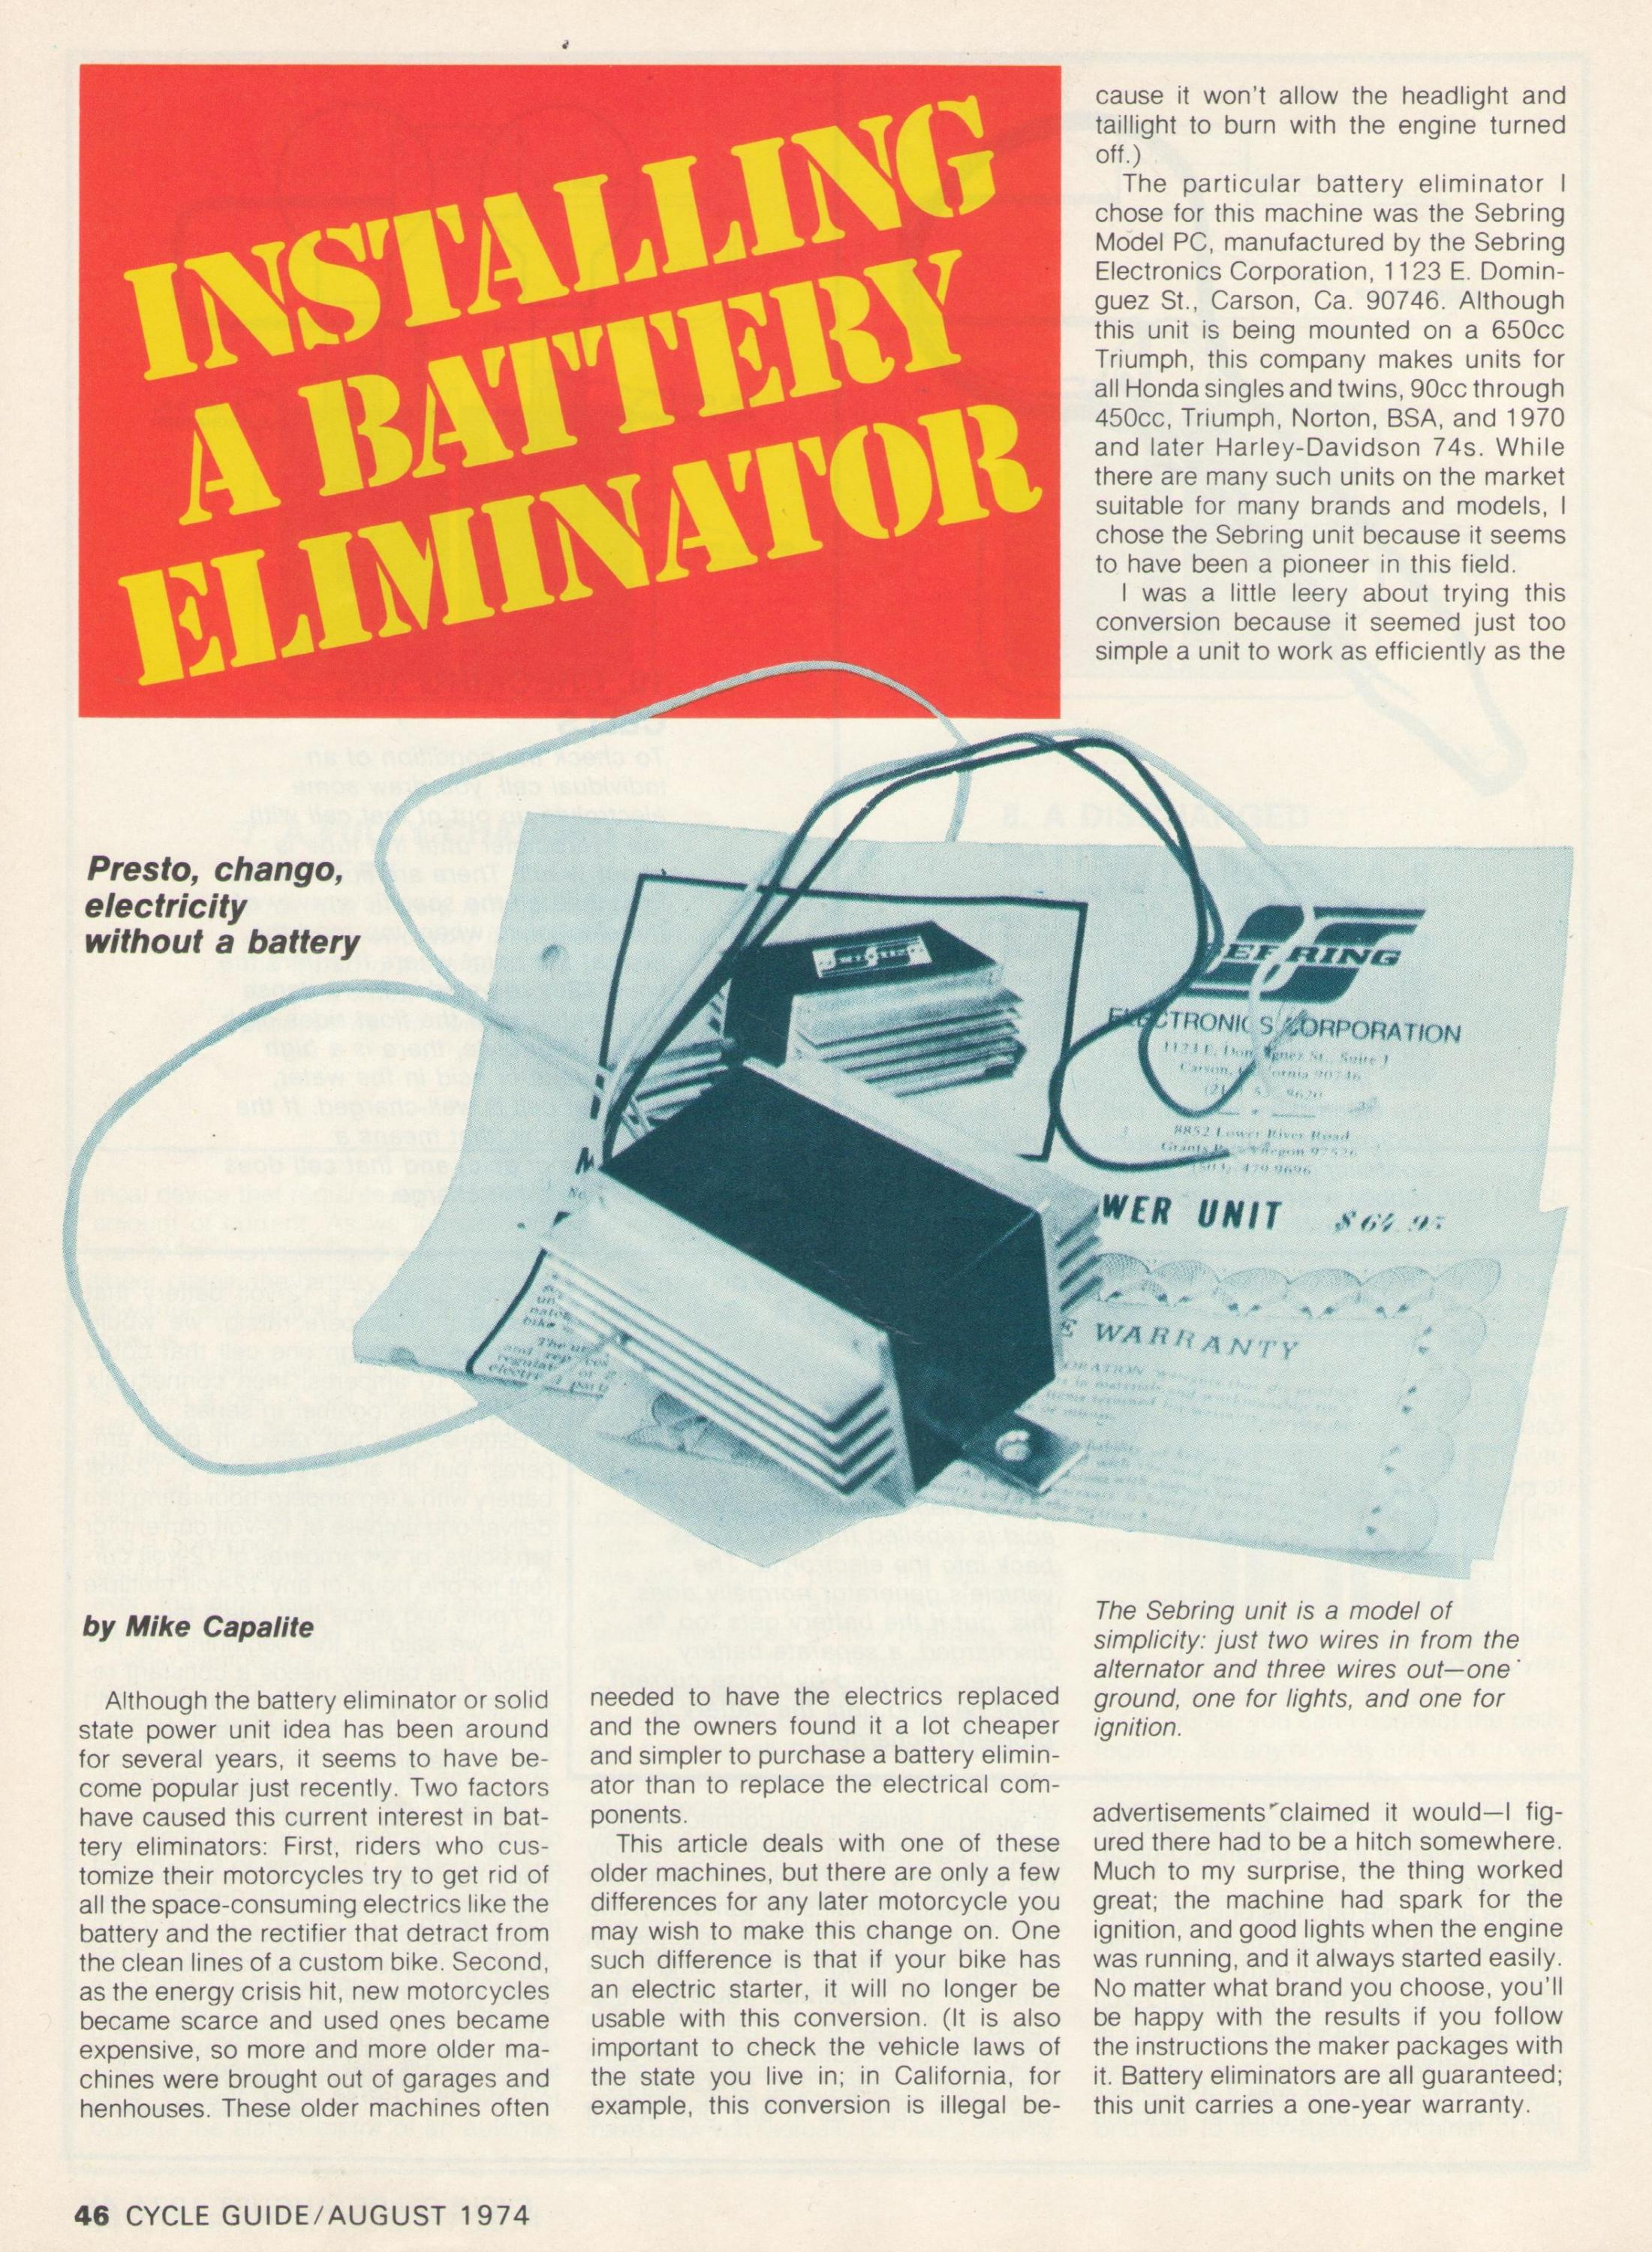 installing a battery eliminator tech article cycle guide magazine August 1974-battery-eliminator-p.1.jpg